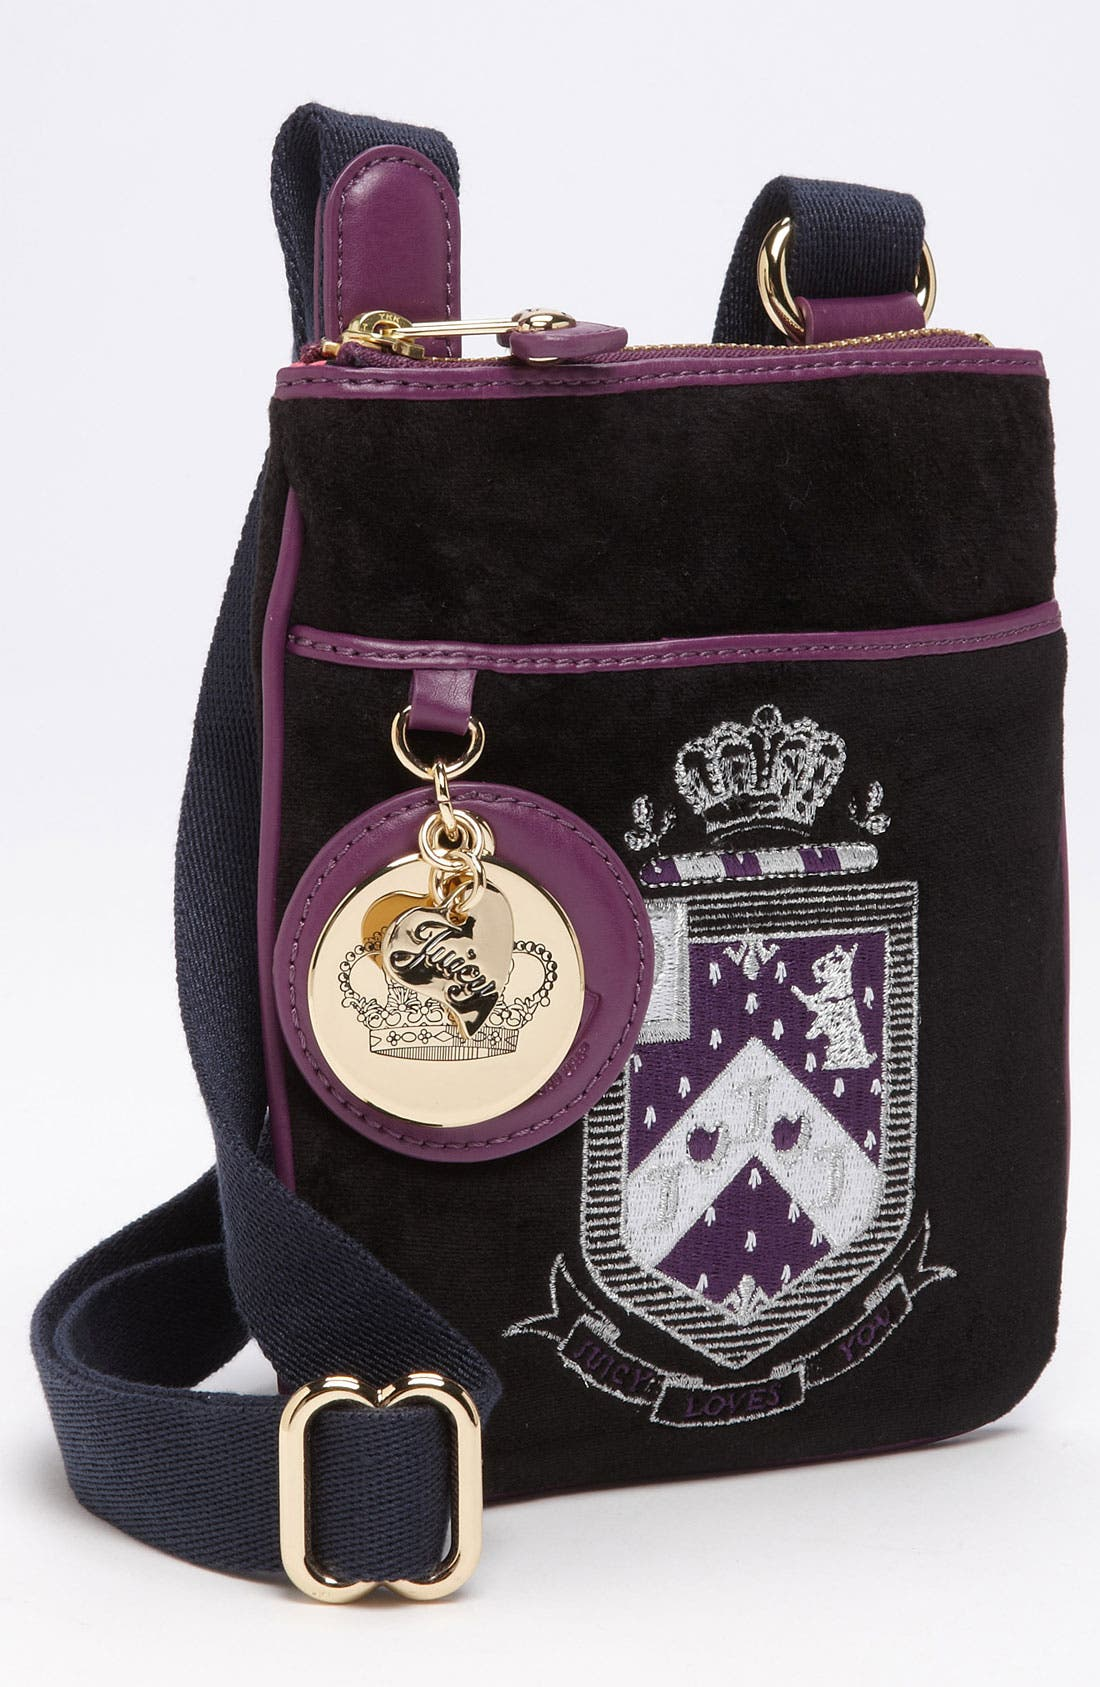 Alternate Image 1 Selected - Juicy Couture 'Juicy Loves You' Velour Crossbody Bag (Girls)